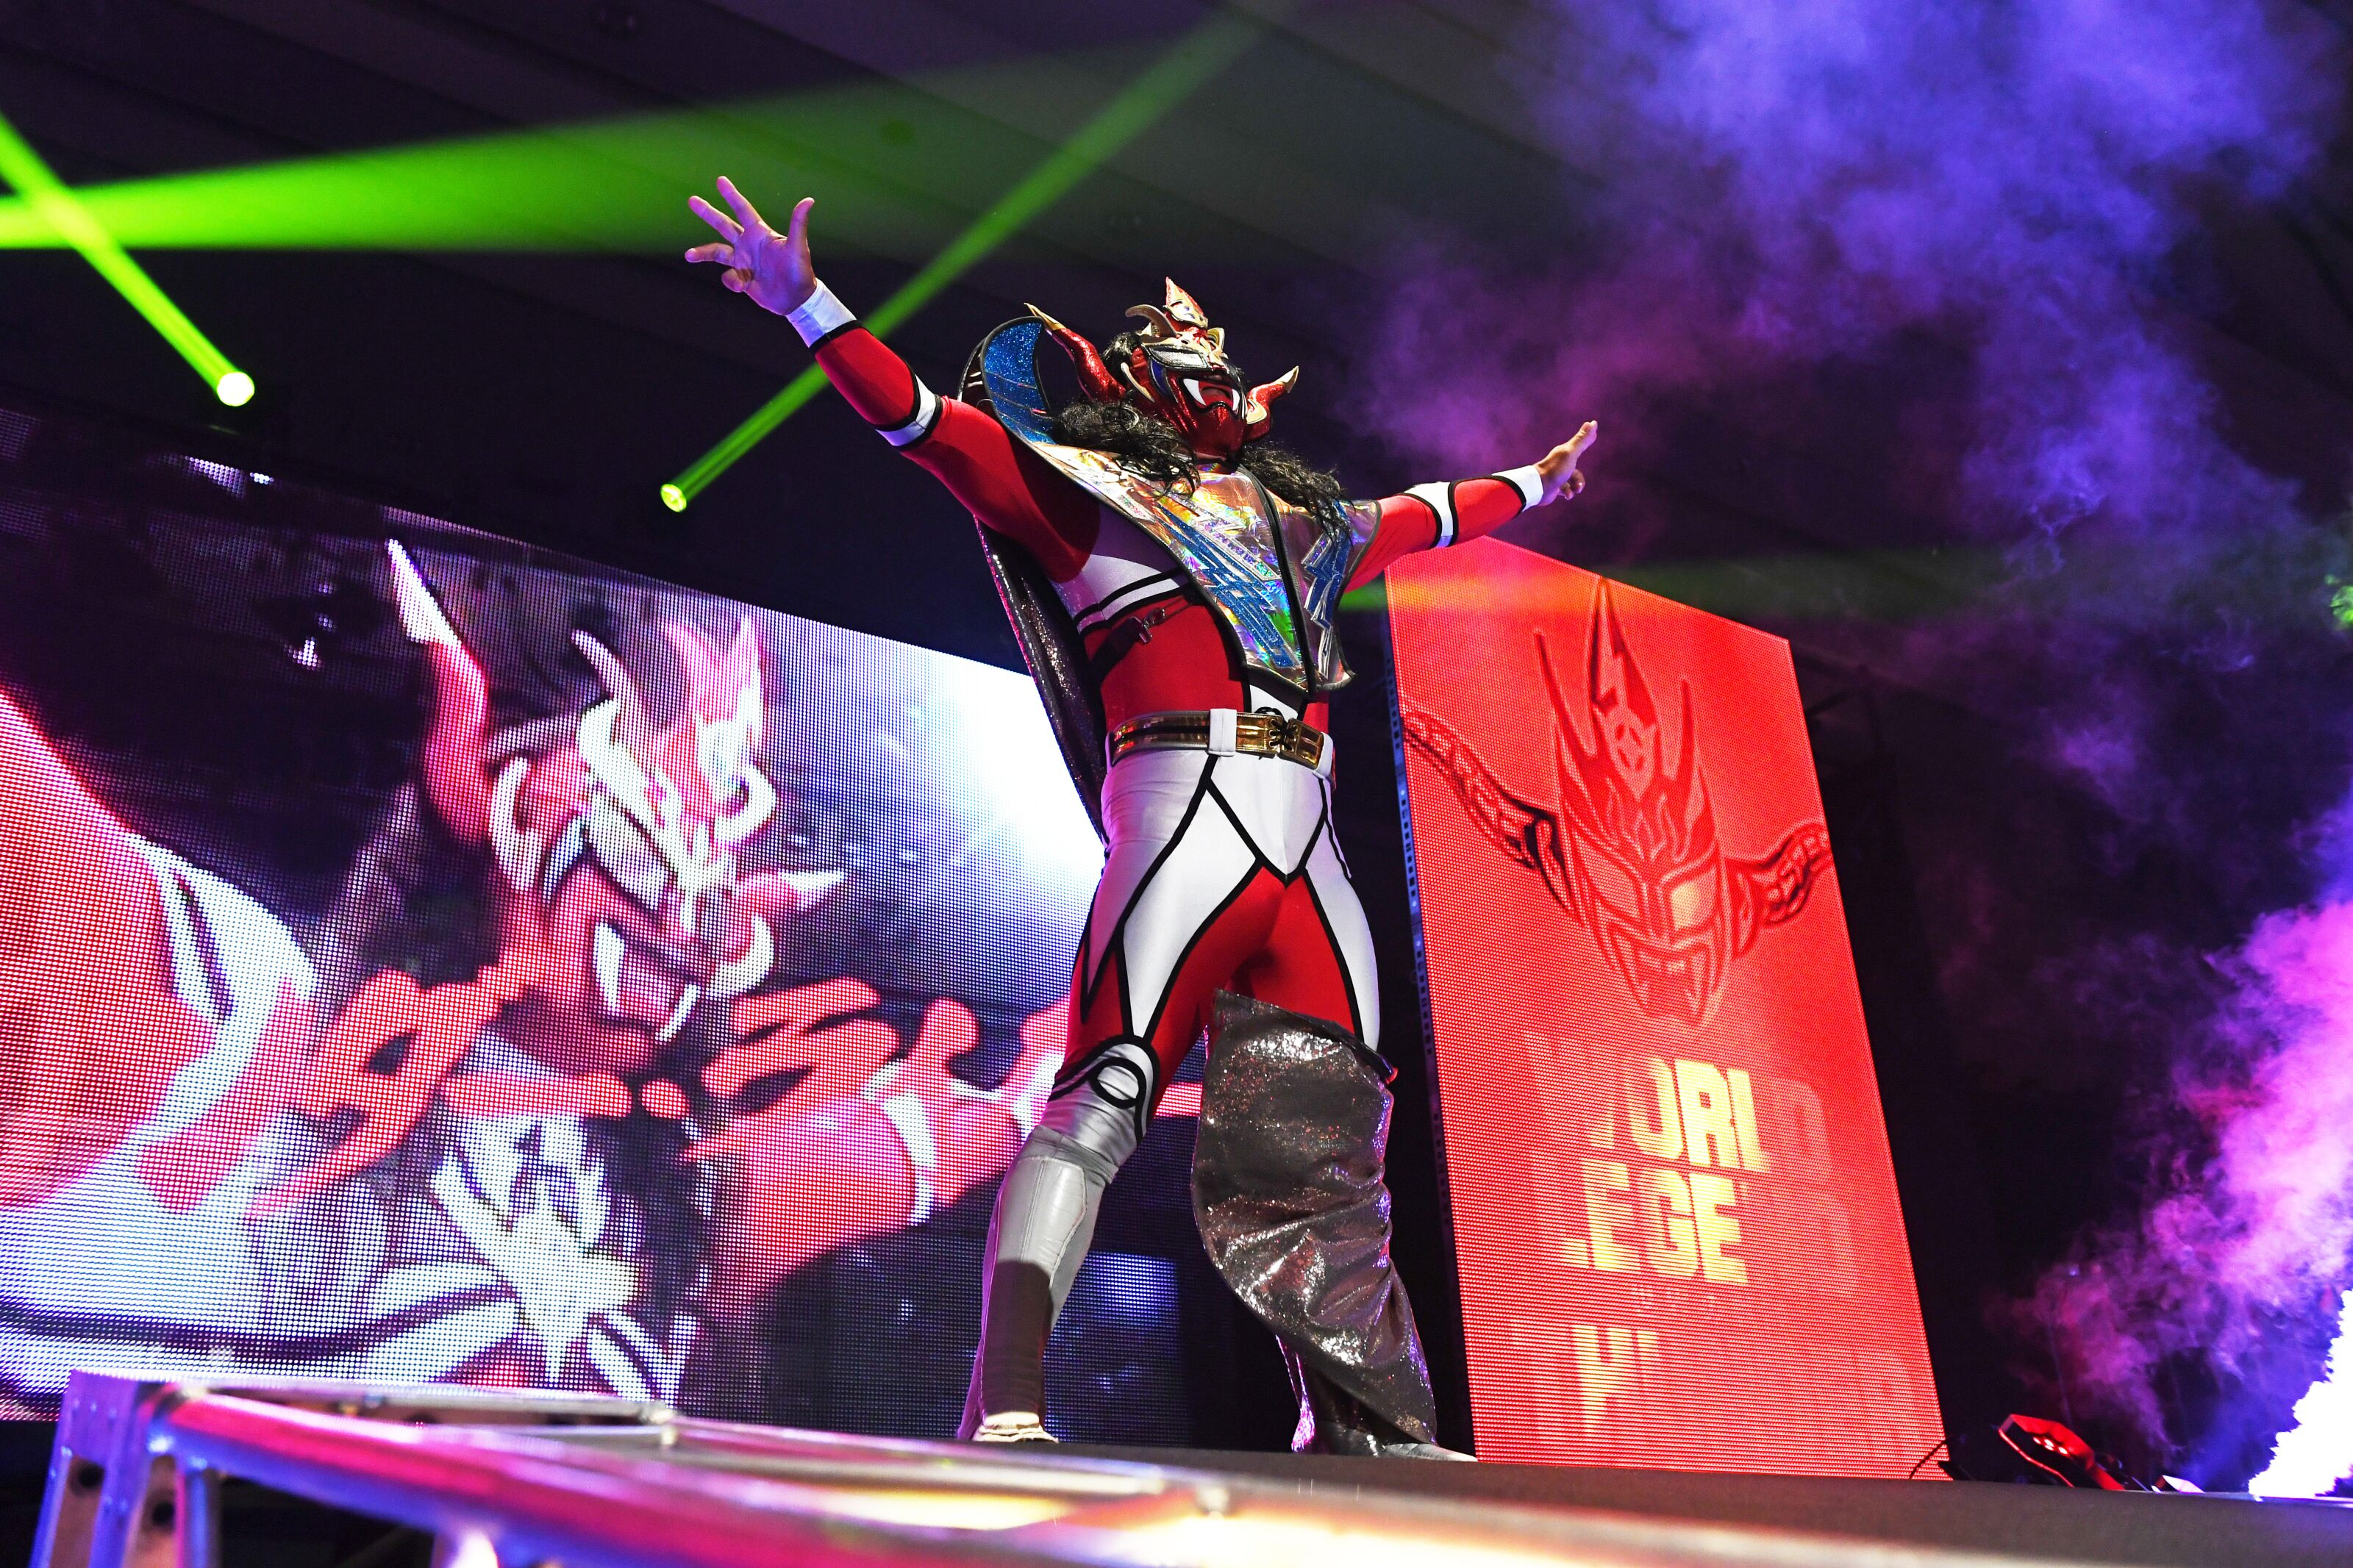 The influence of manga and anime in pro wrestling